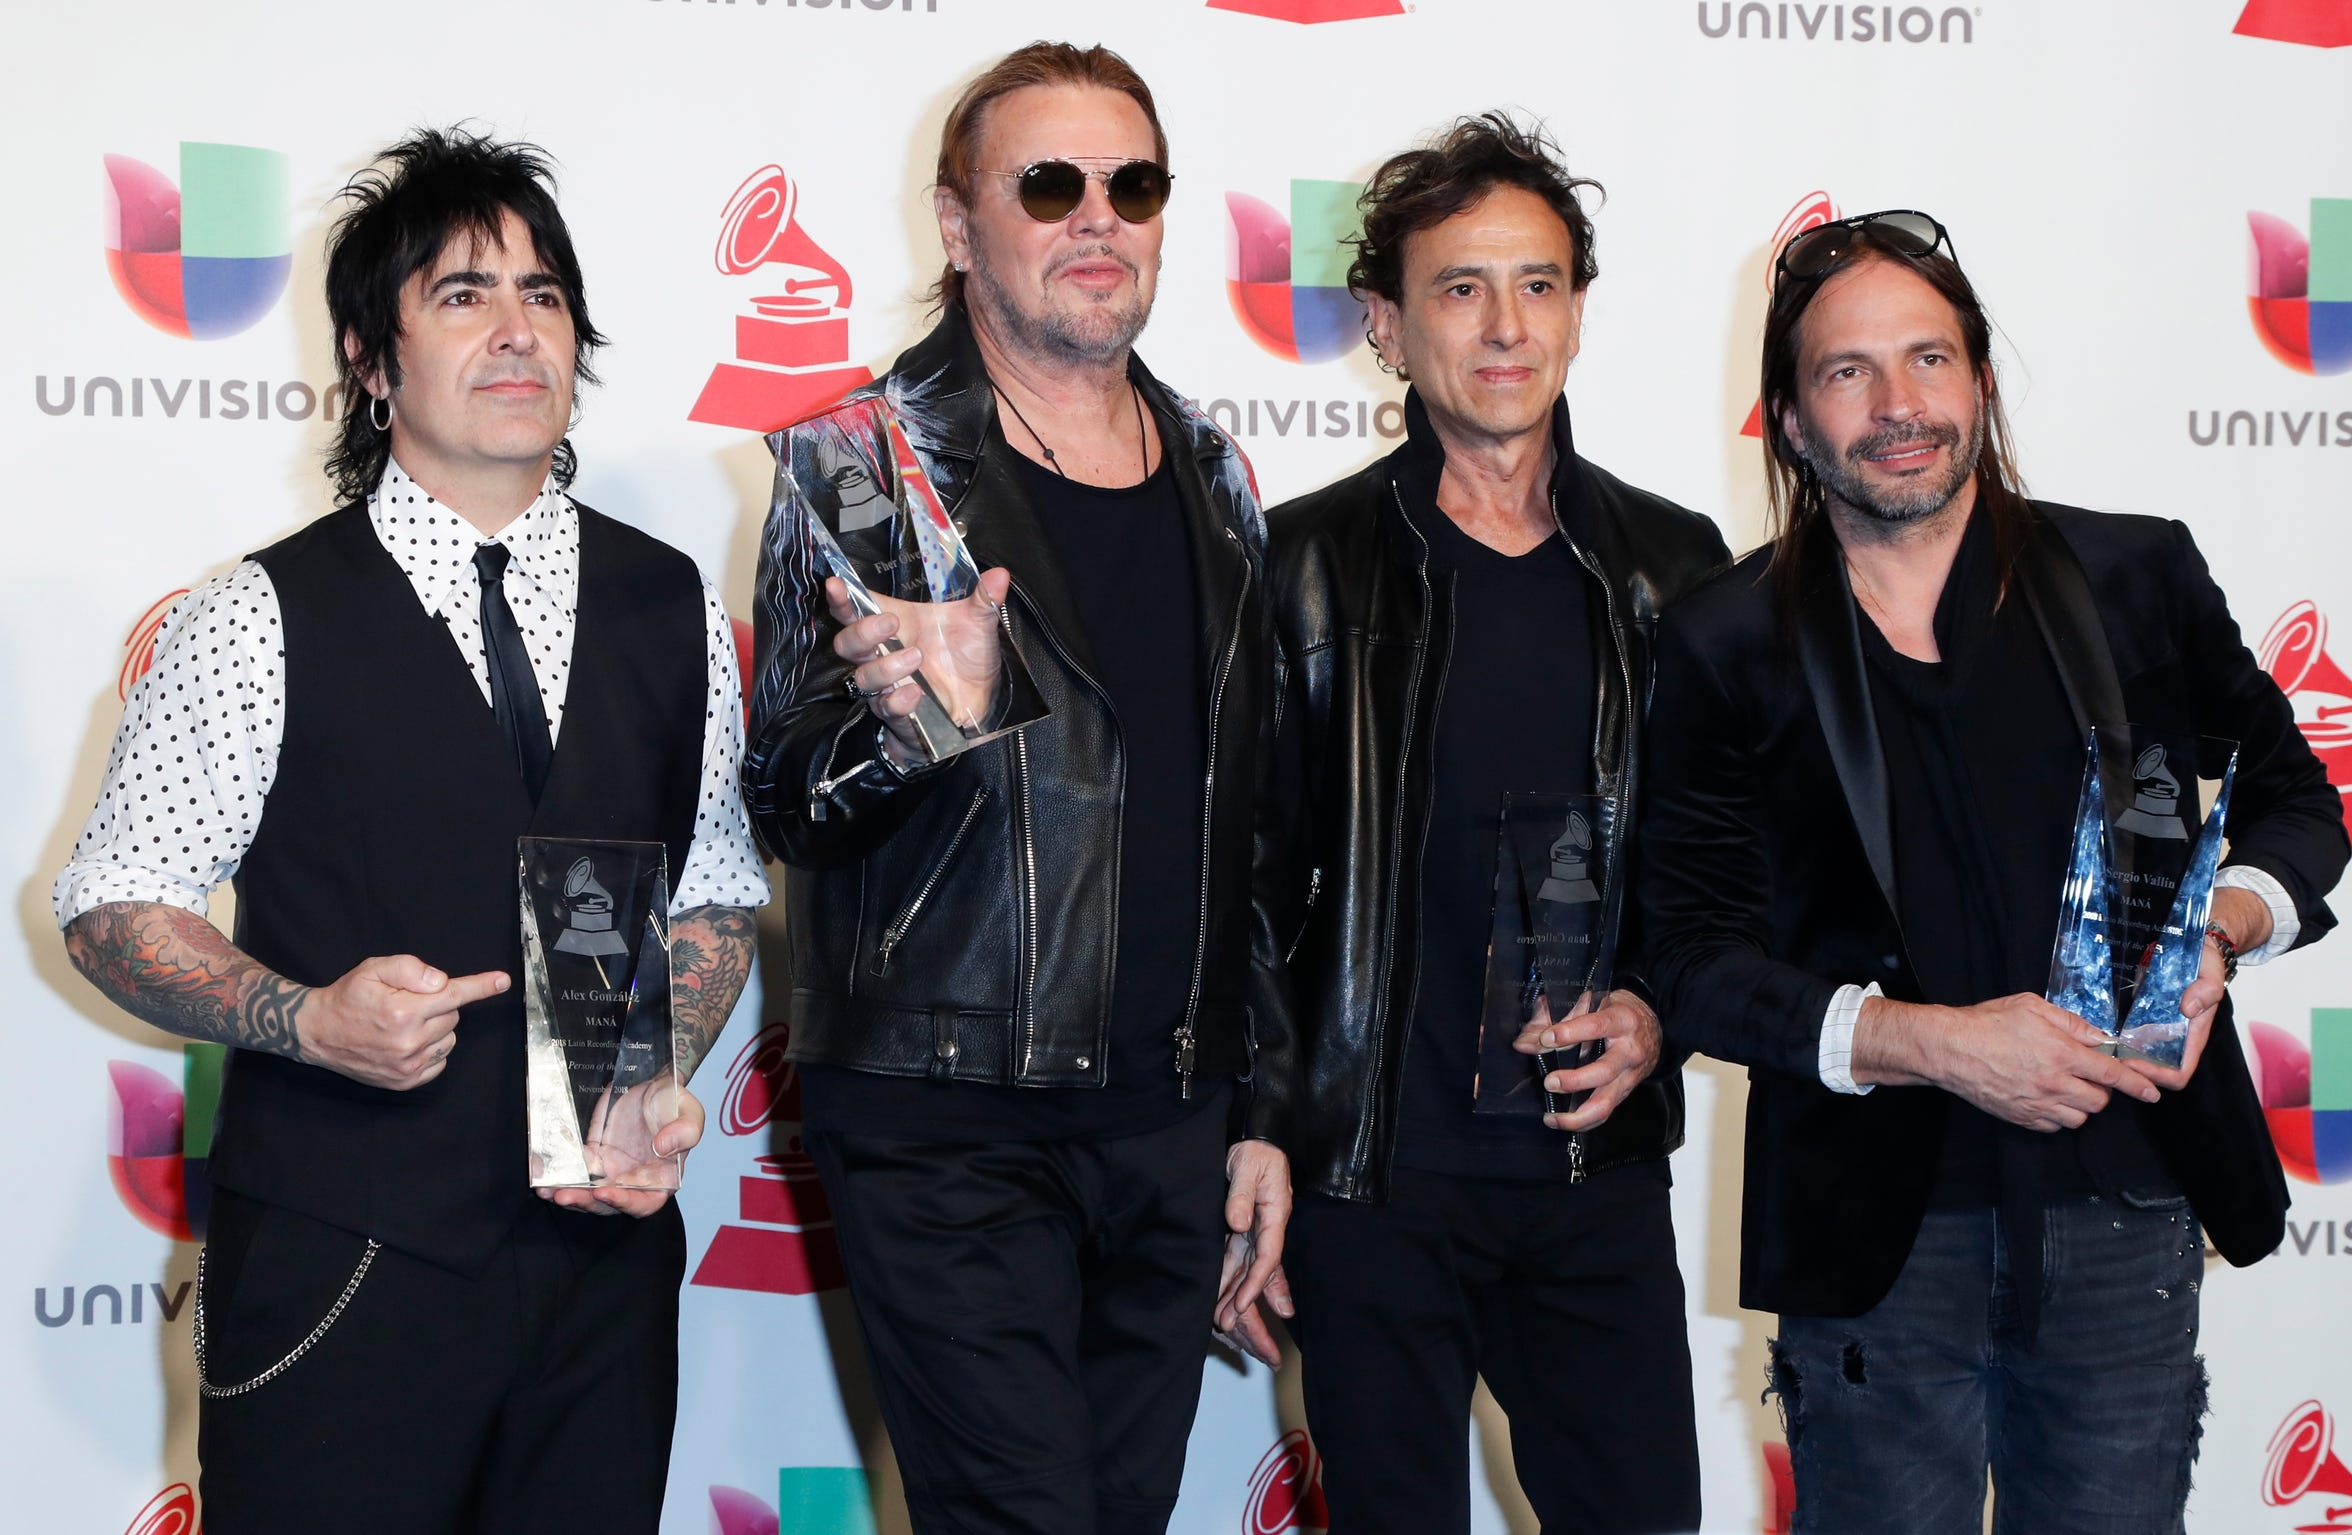 Mana are pictured after receiving the Person of the Year during the 19th Annual Latin Grammy Awards ceremony at the MGM Grand Garden Arena in Las Vegas, Nevada.